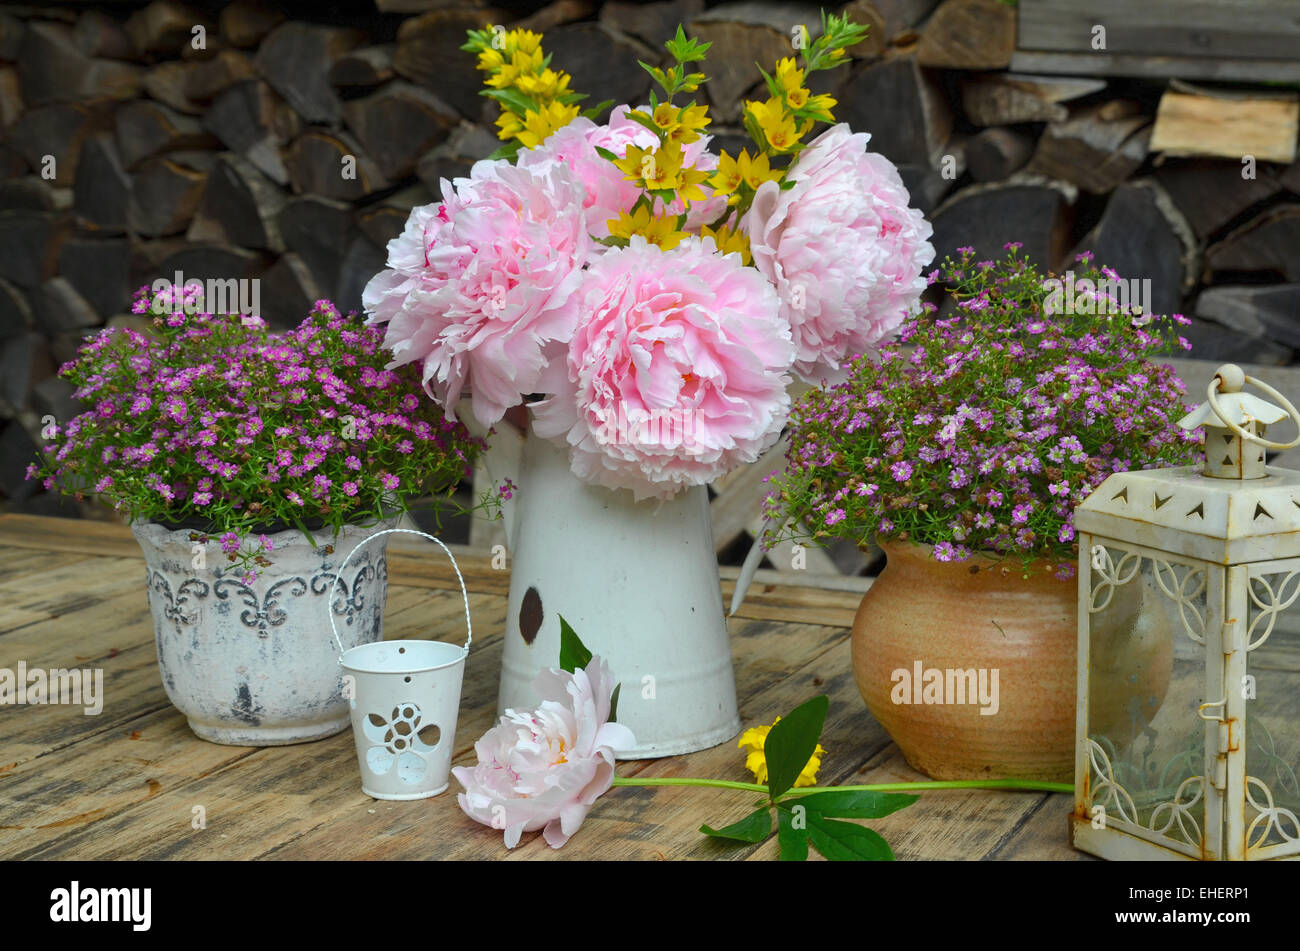 garden peonies shabby chic flowers stock photo 79616601 alamy. Black Bedroom Furniture Sets. Home Design Ideas